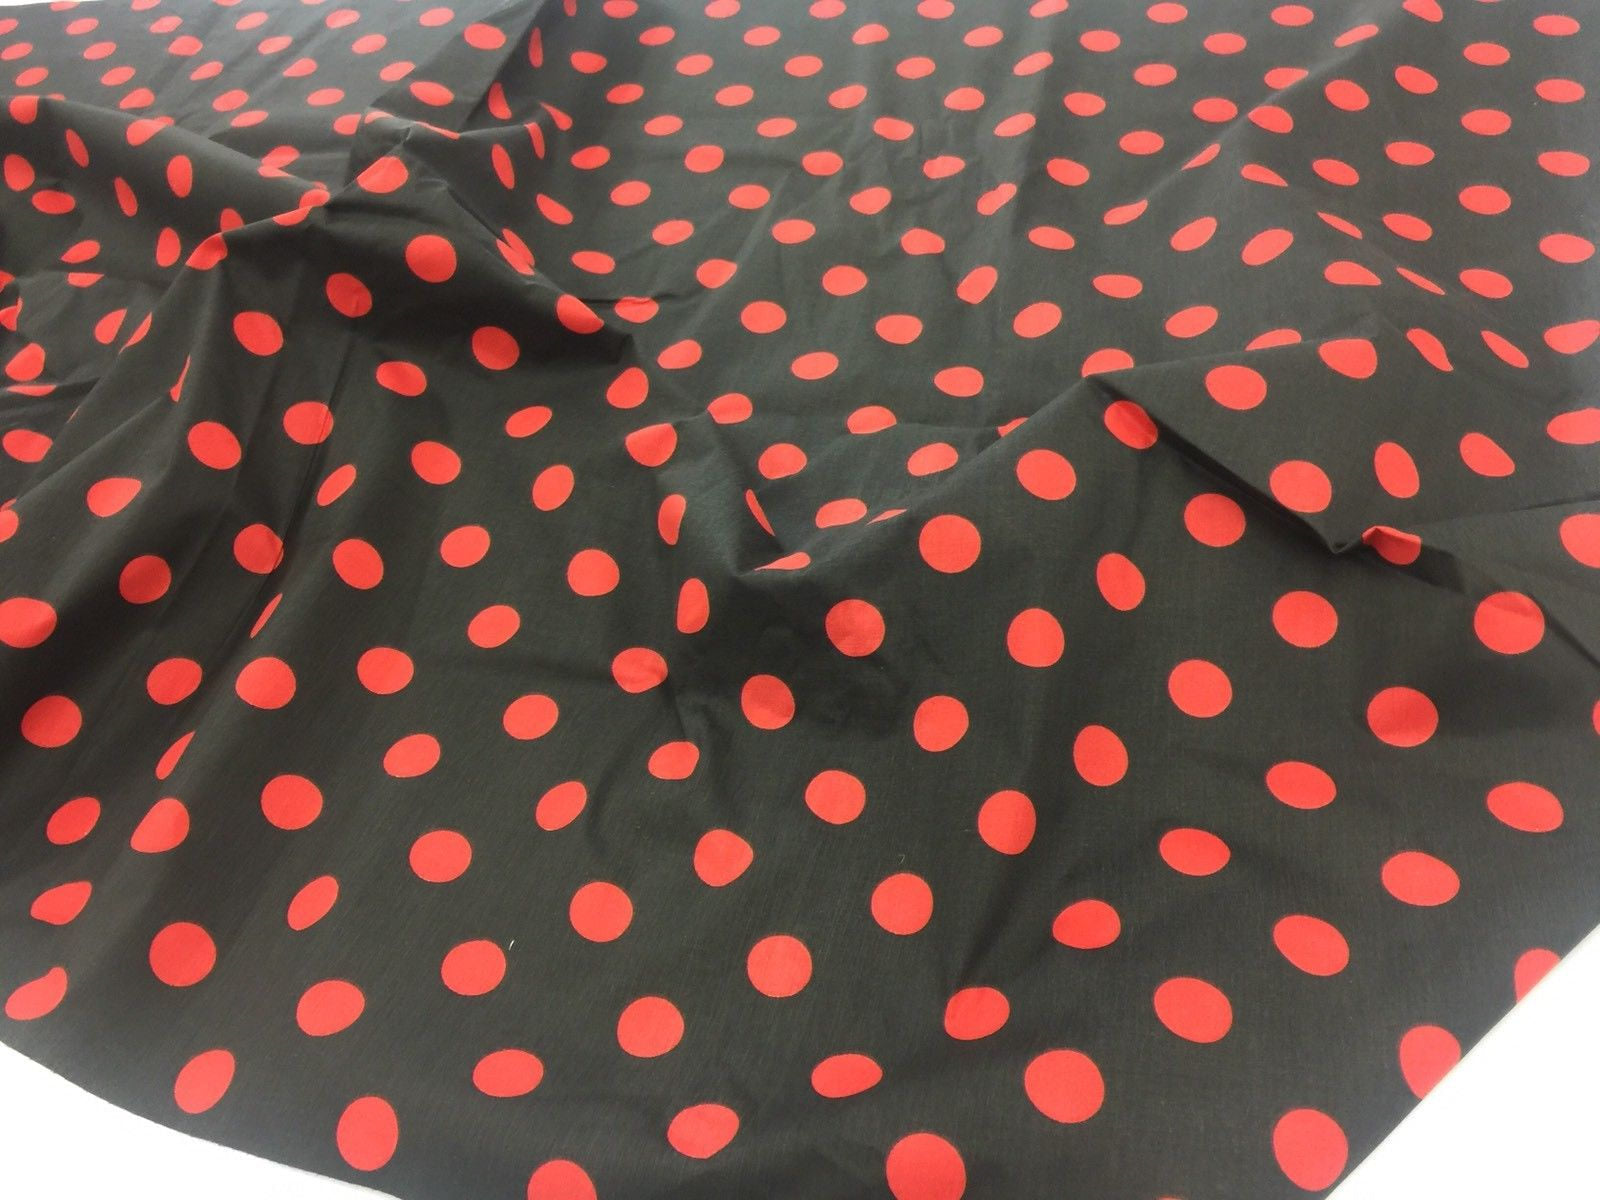 Poly Cotton Fabric Black Red Polka Dot Design By Yard - KINGDOM OF FABRICS